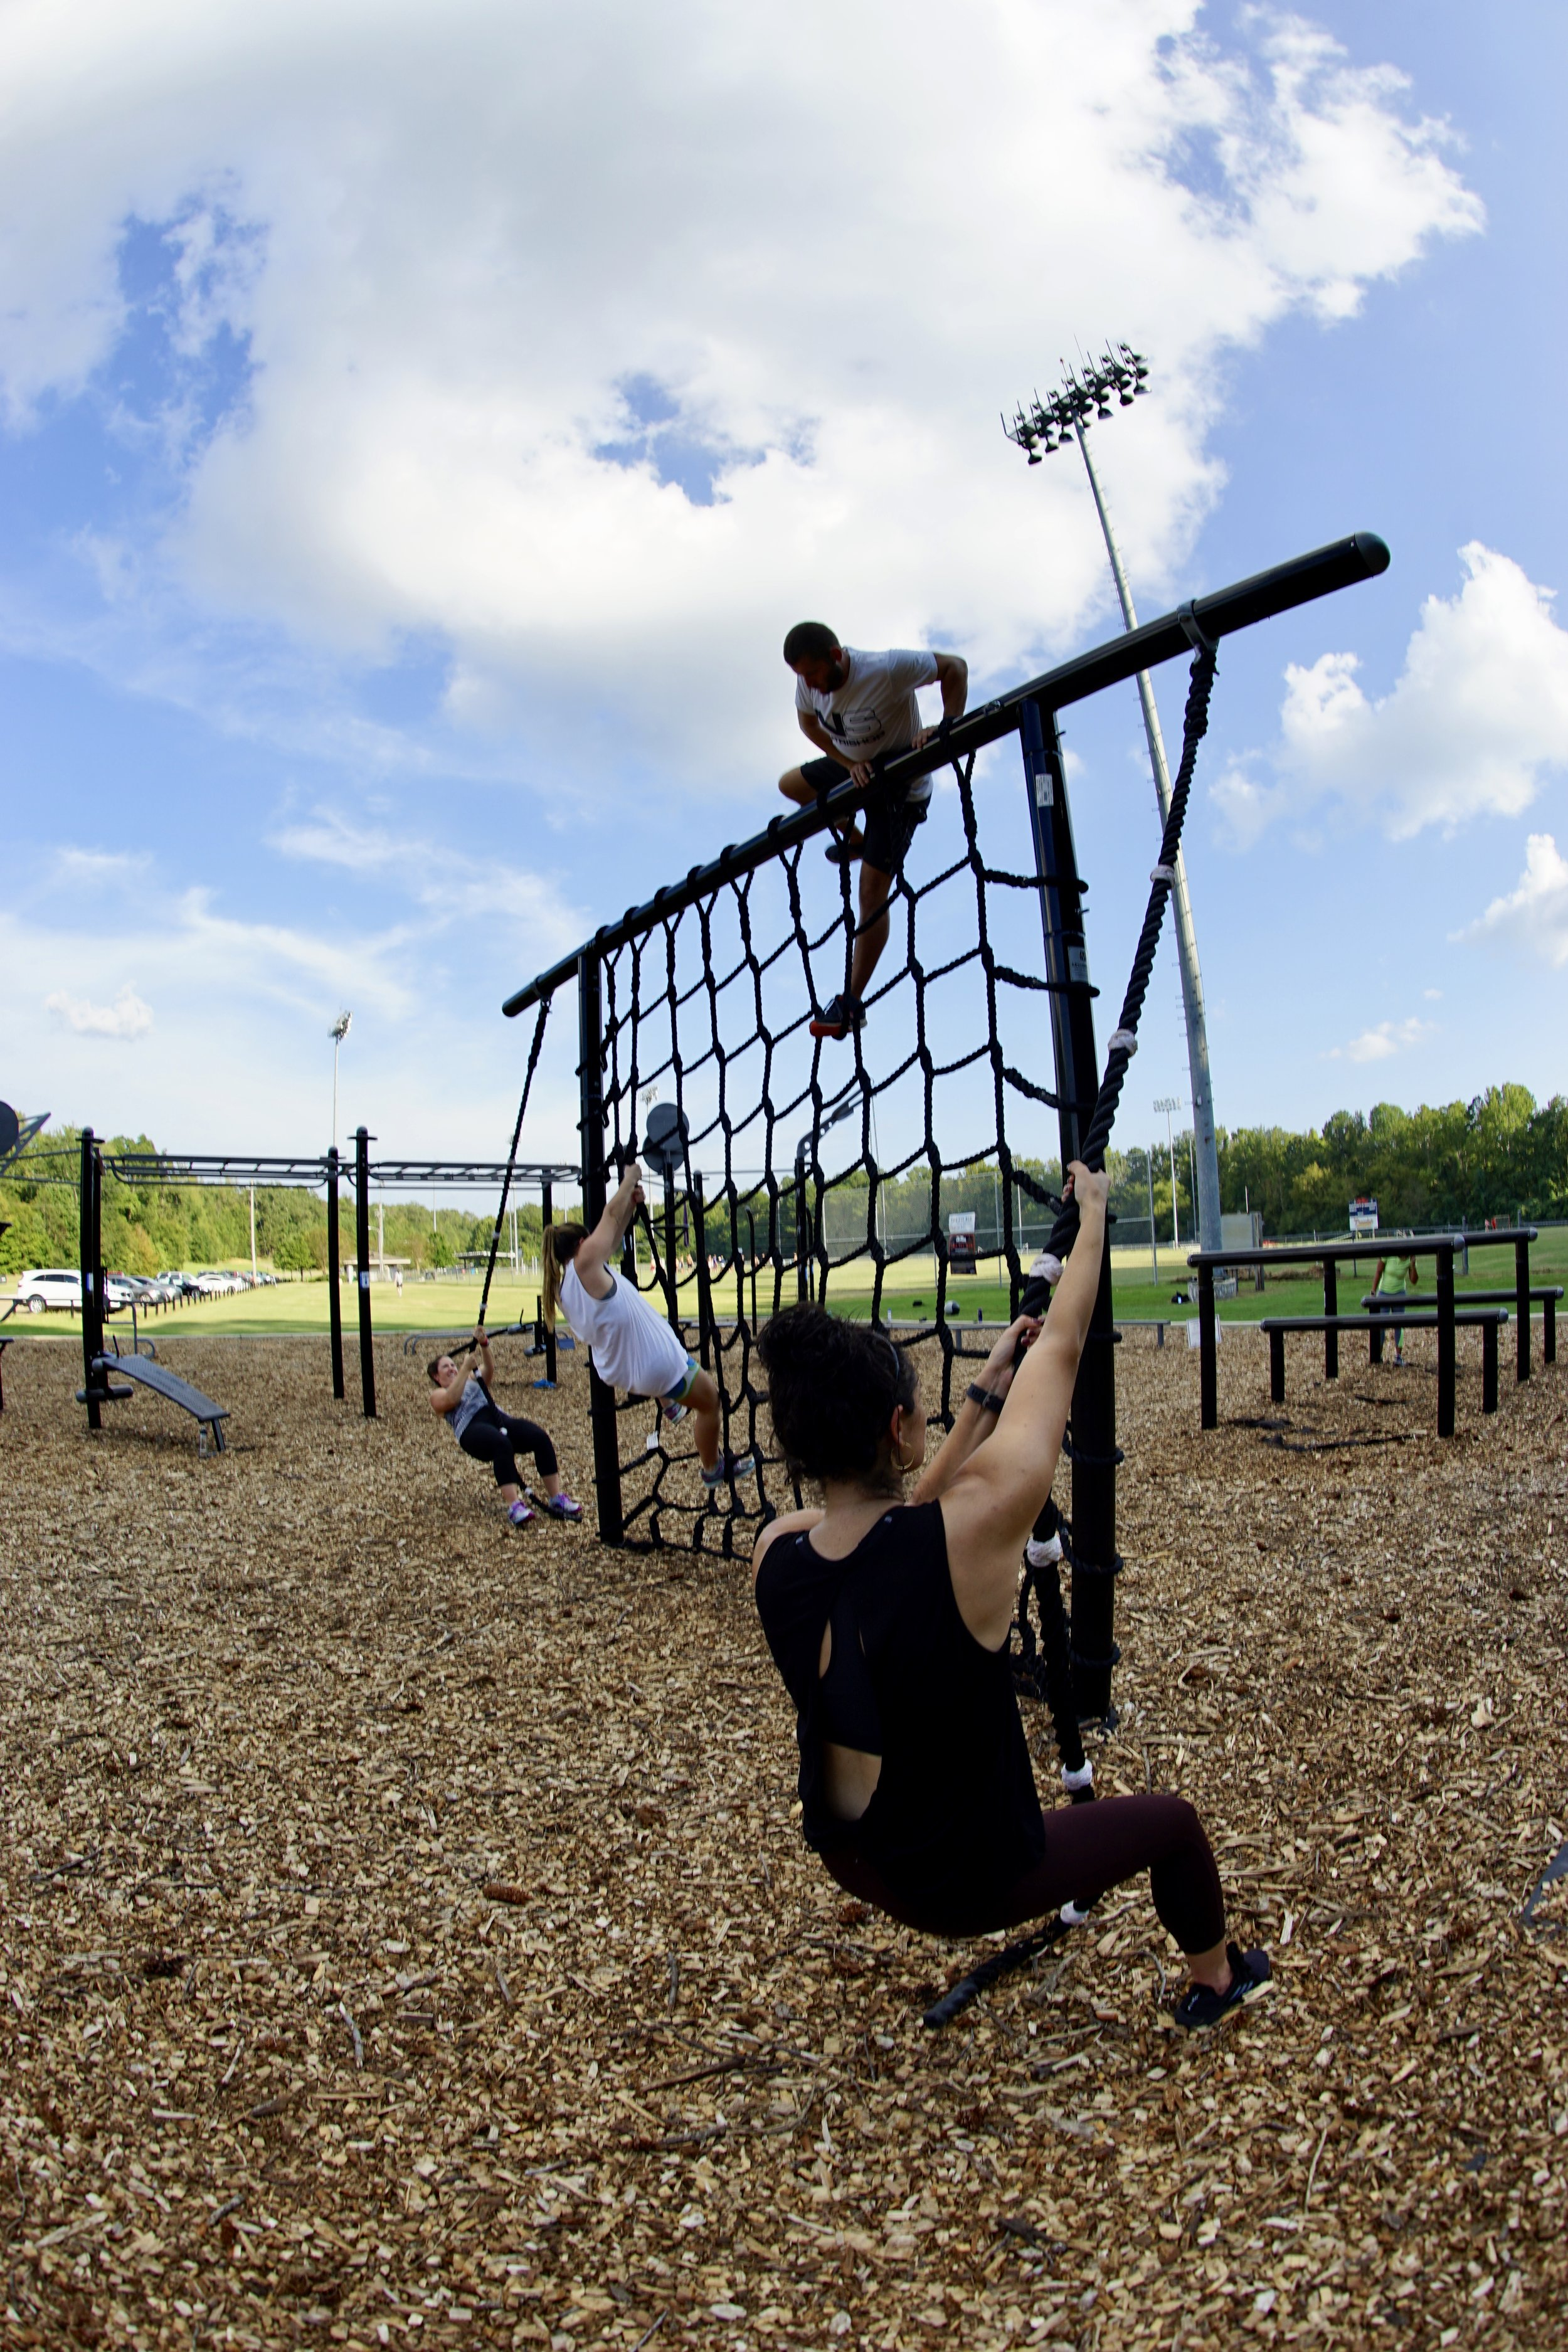 Cargonet for Obstacle Course Training